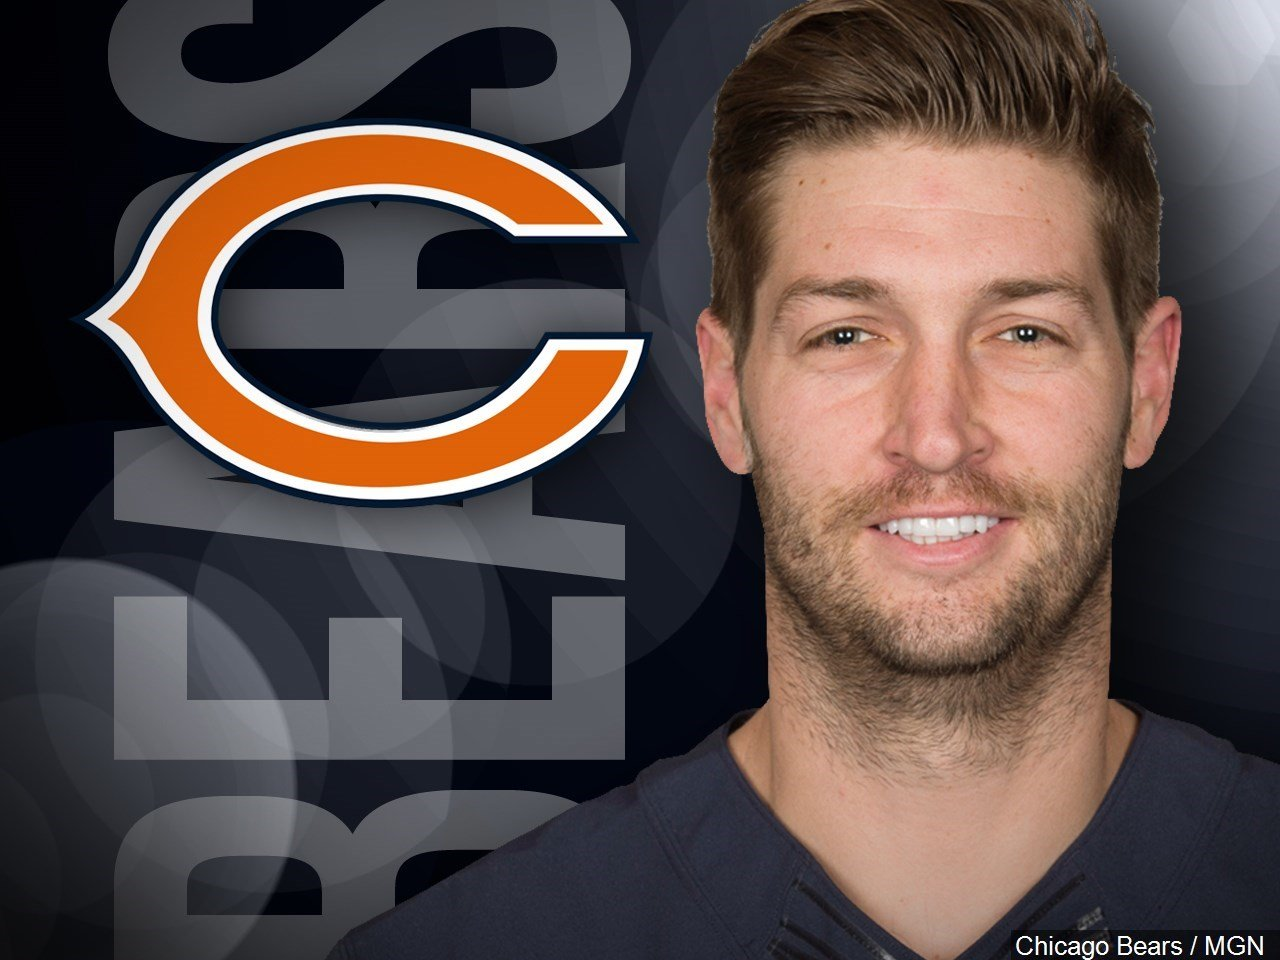 Sprained thumb could leave struggling Bears without Cutler